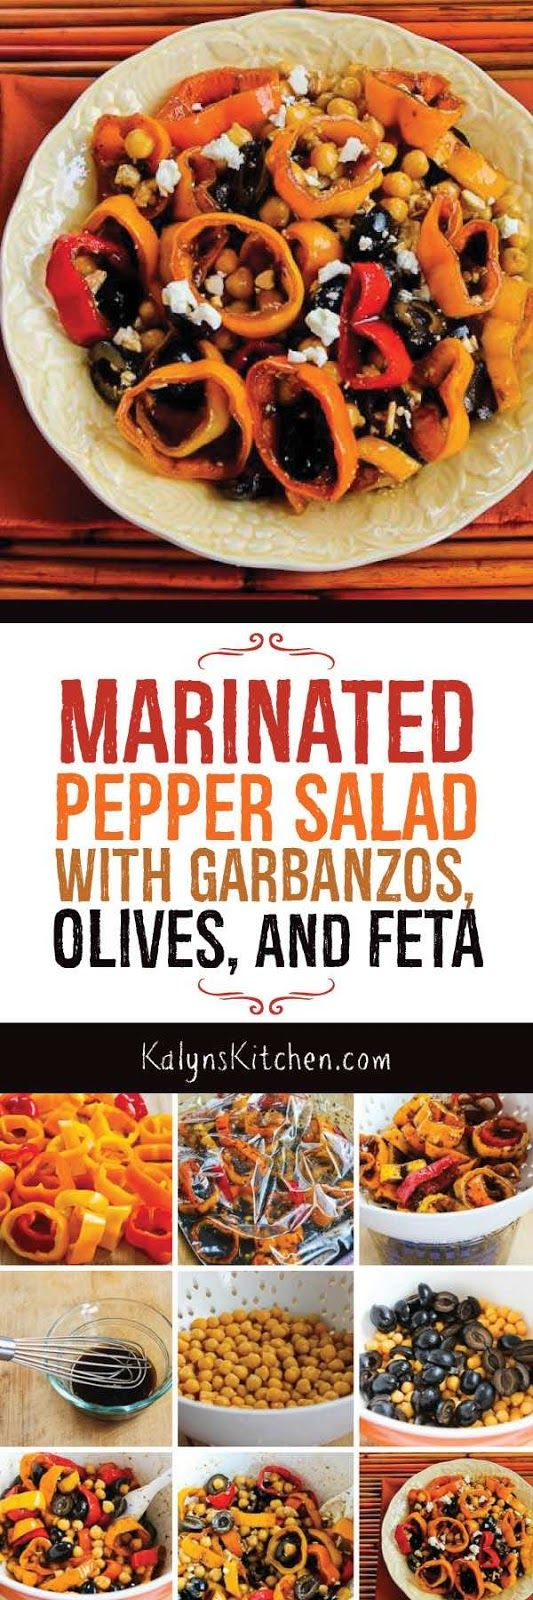 Marinated Pepper Salad with Garbanzos, Olives, and Feta is a delicious salad for any time of year! And this tasty salad with marinated mini-pepper slices is low-glycemic, gluten-free, meatless, and South Beach Diet friendly. [found on KalynsKitchen.com]